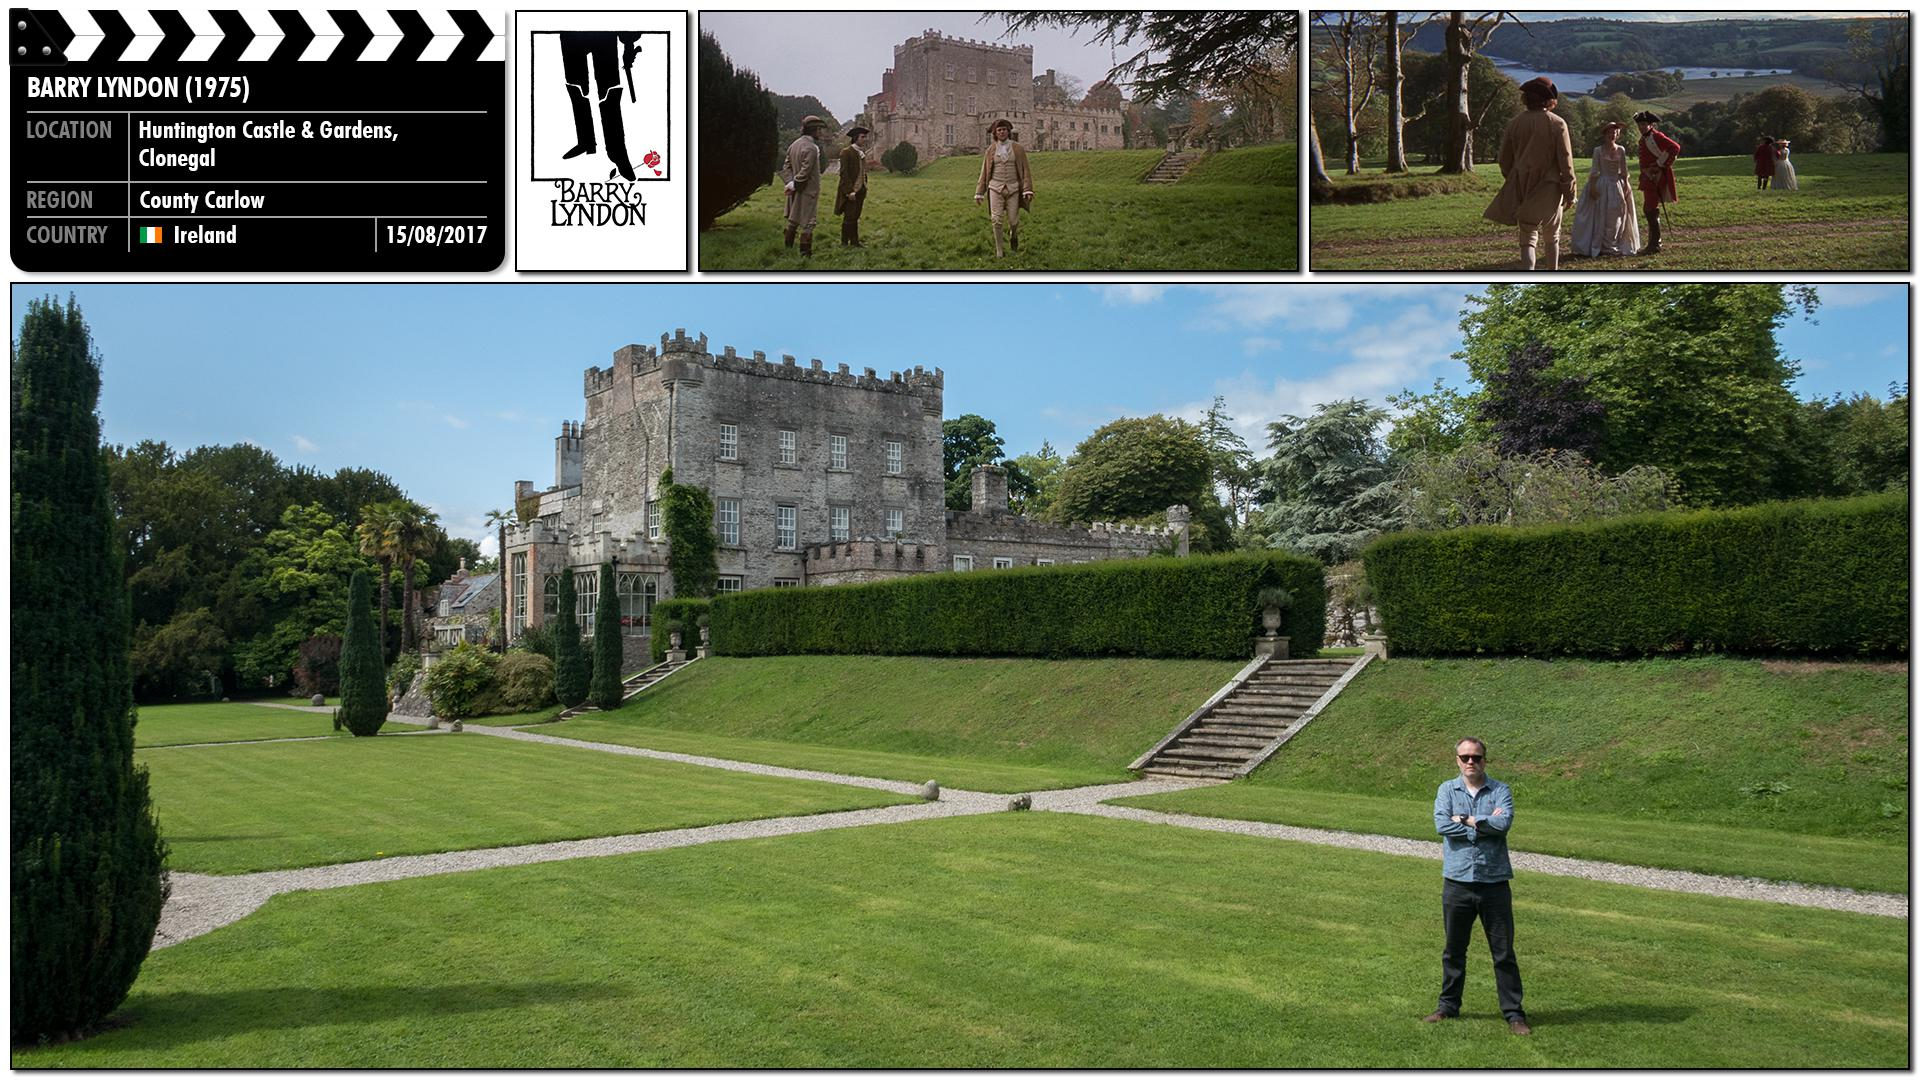 Filming location photo for Barry Lyndon (1975) 15 of 15